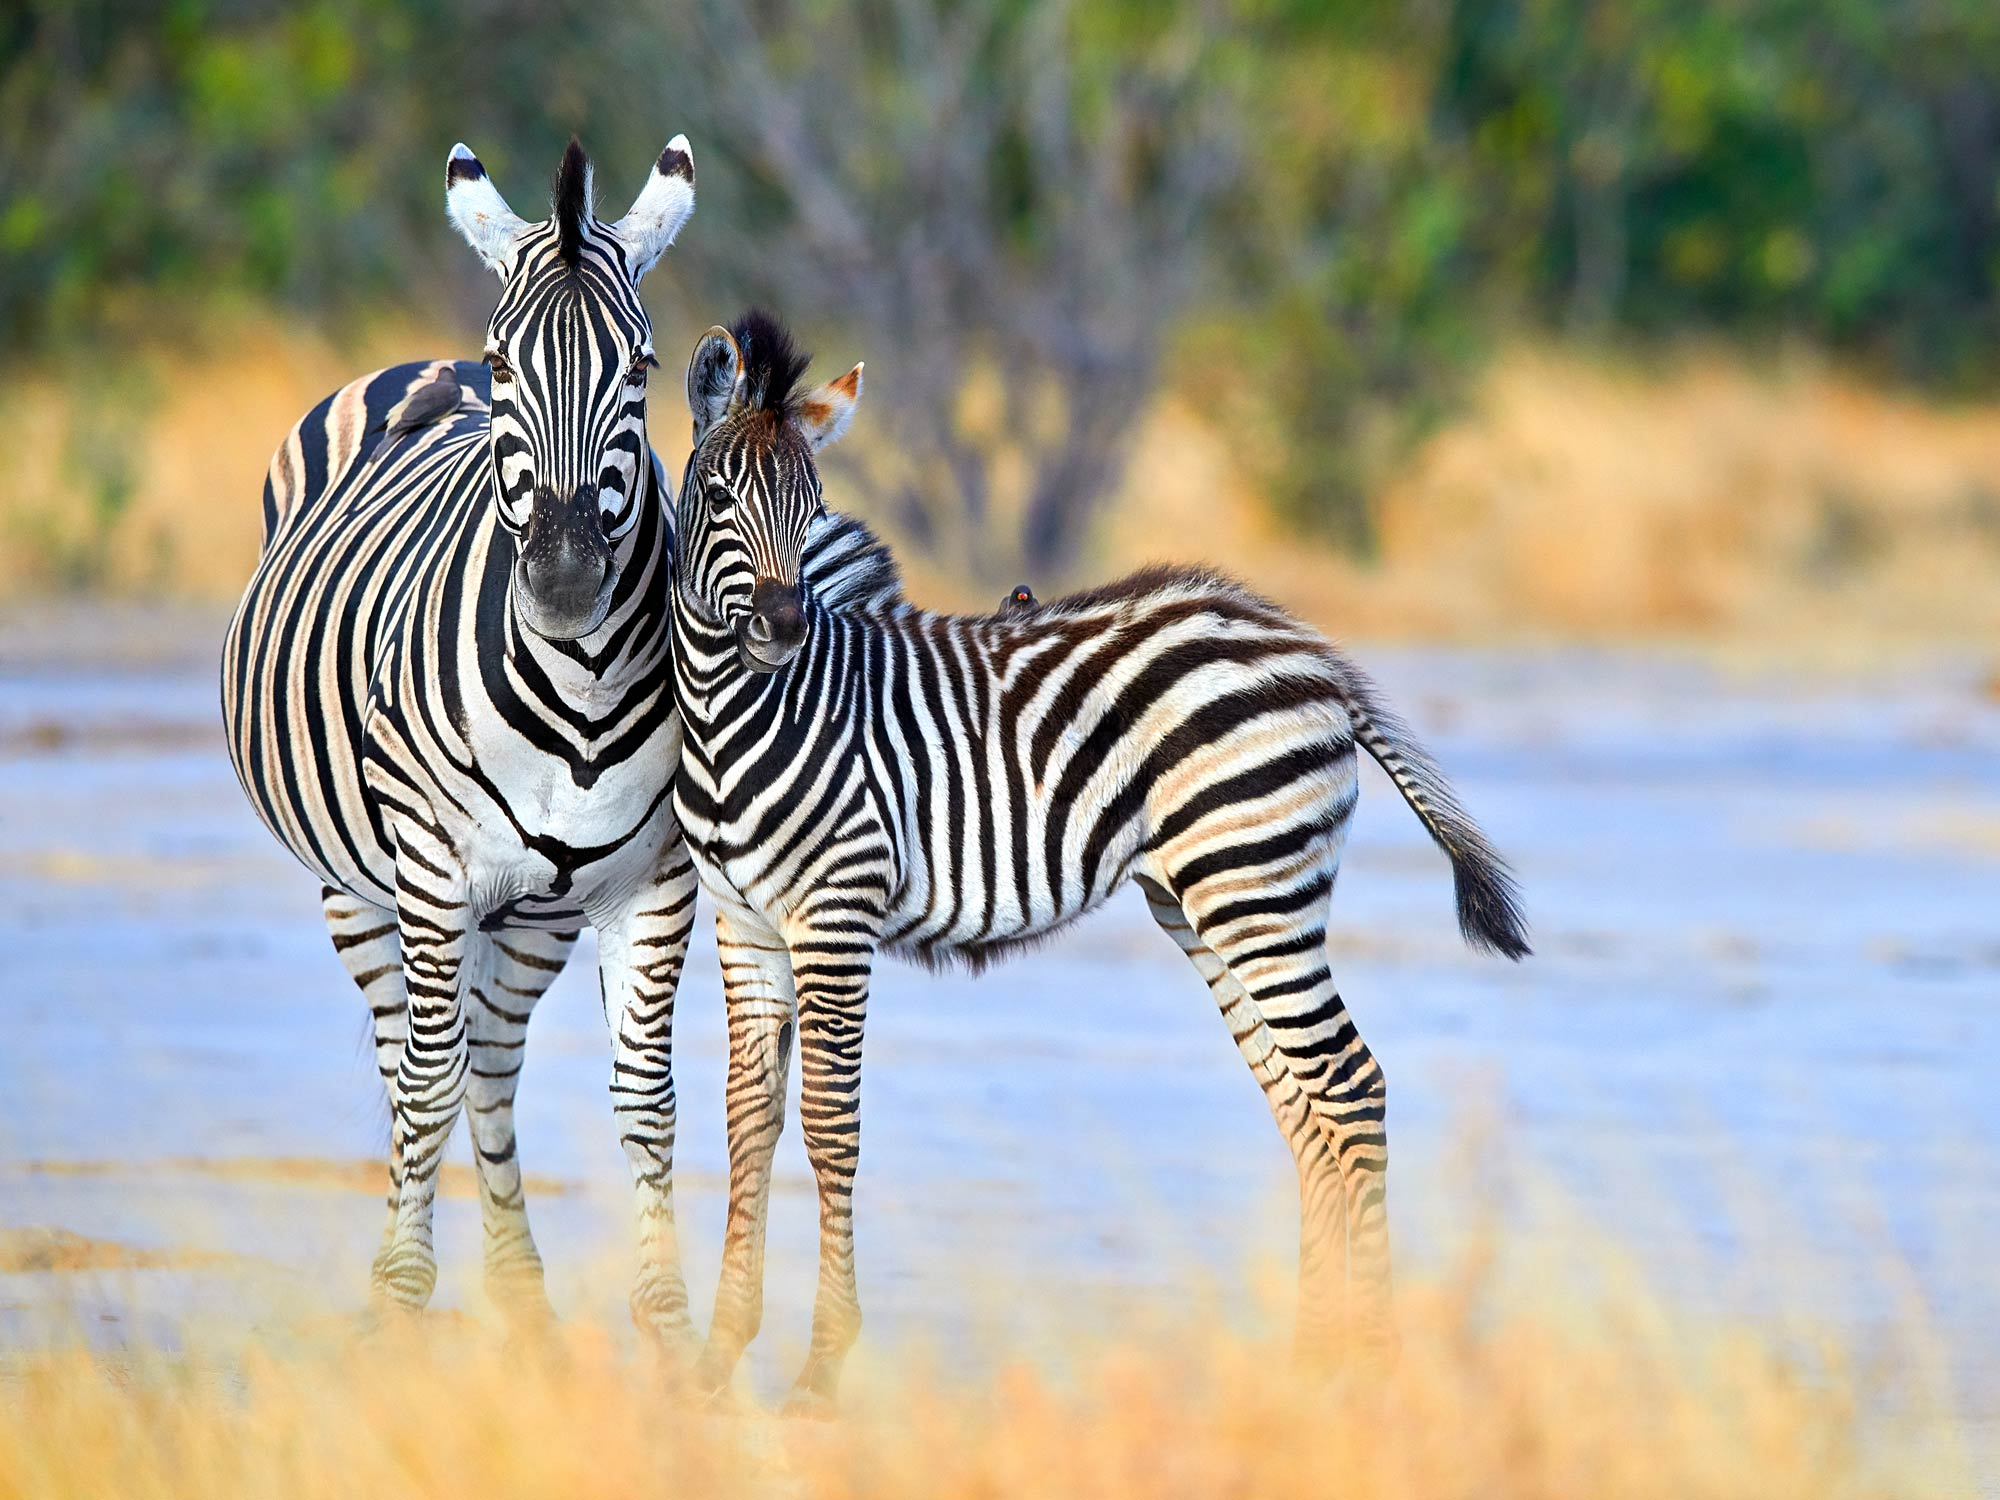 Zebra mother and colt, Botswana, Africa.